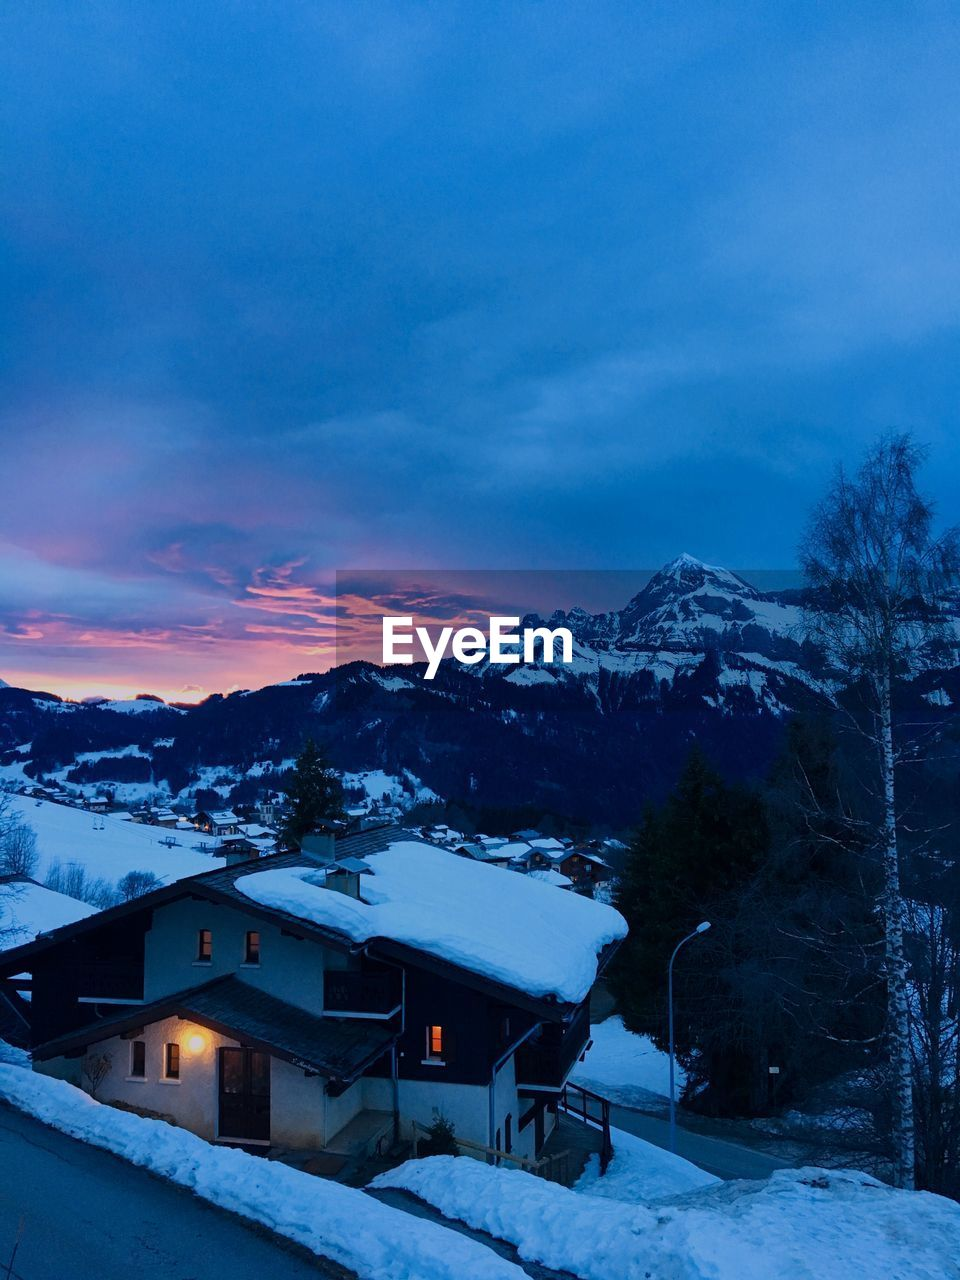 snow, winter, cold temperature, sky, architecture, built structure, mountain, beauty in nature, cloud - sky, building exterior, scenics - nature, house, building, nature, covering, sunset, tree, mountain range, snowcapped mountain, no people, outdoors, ski resort